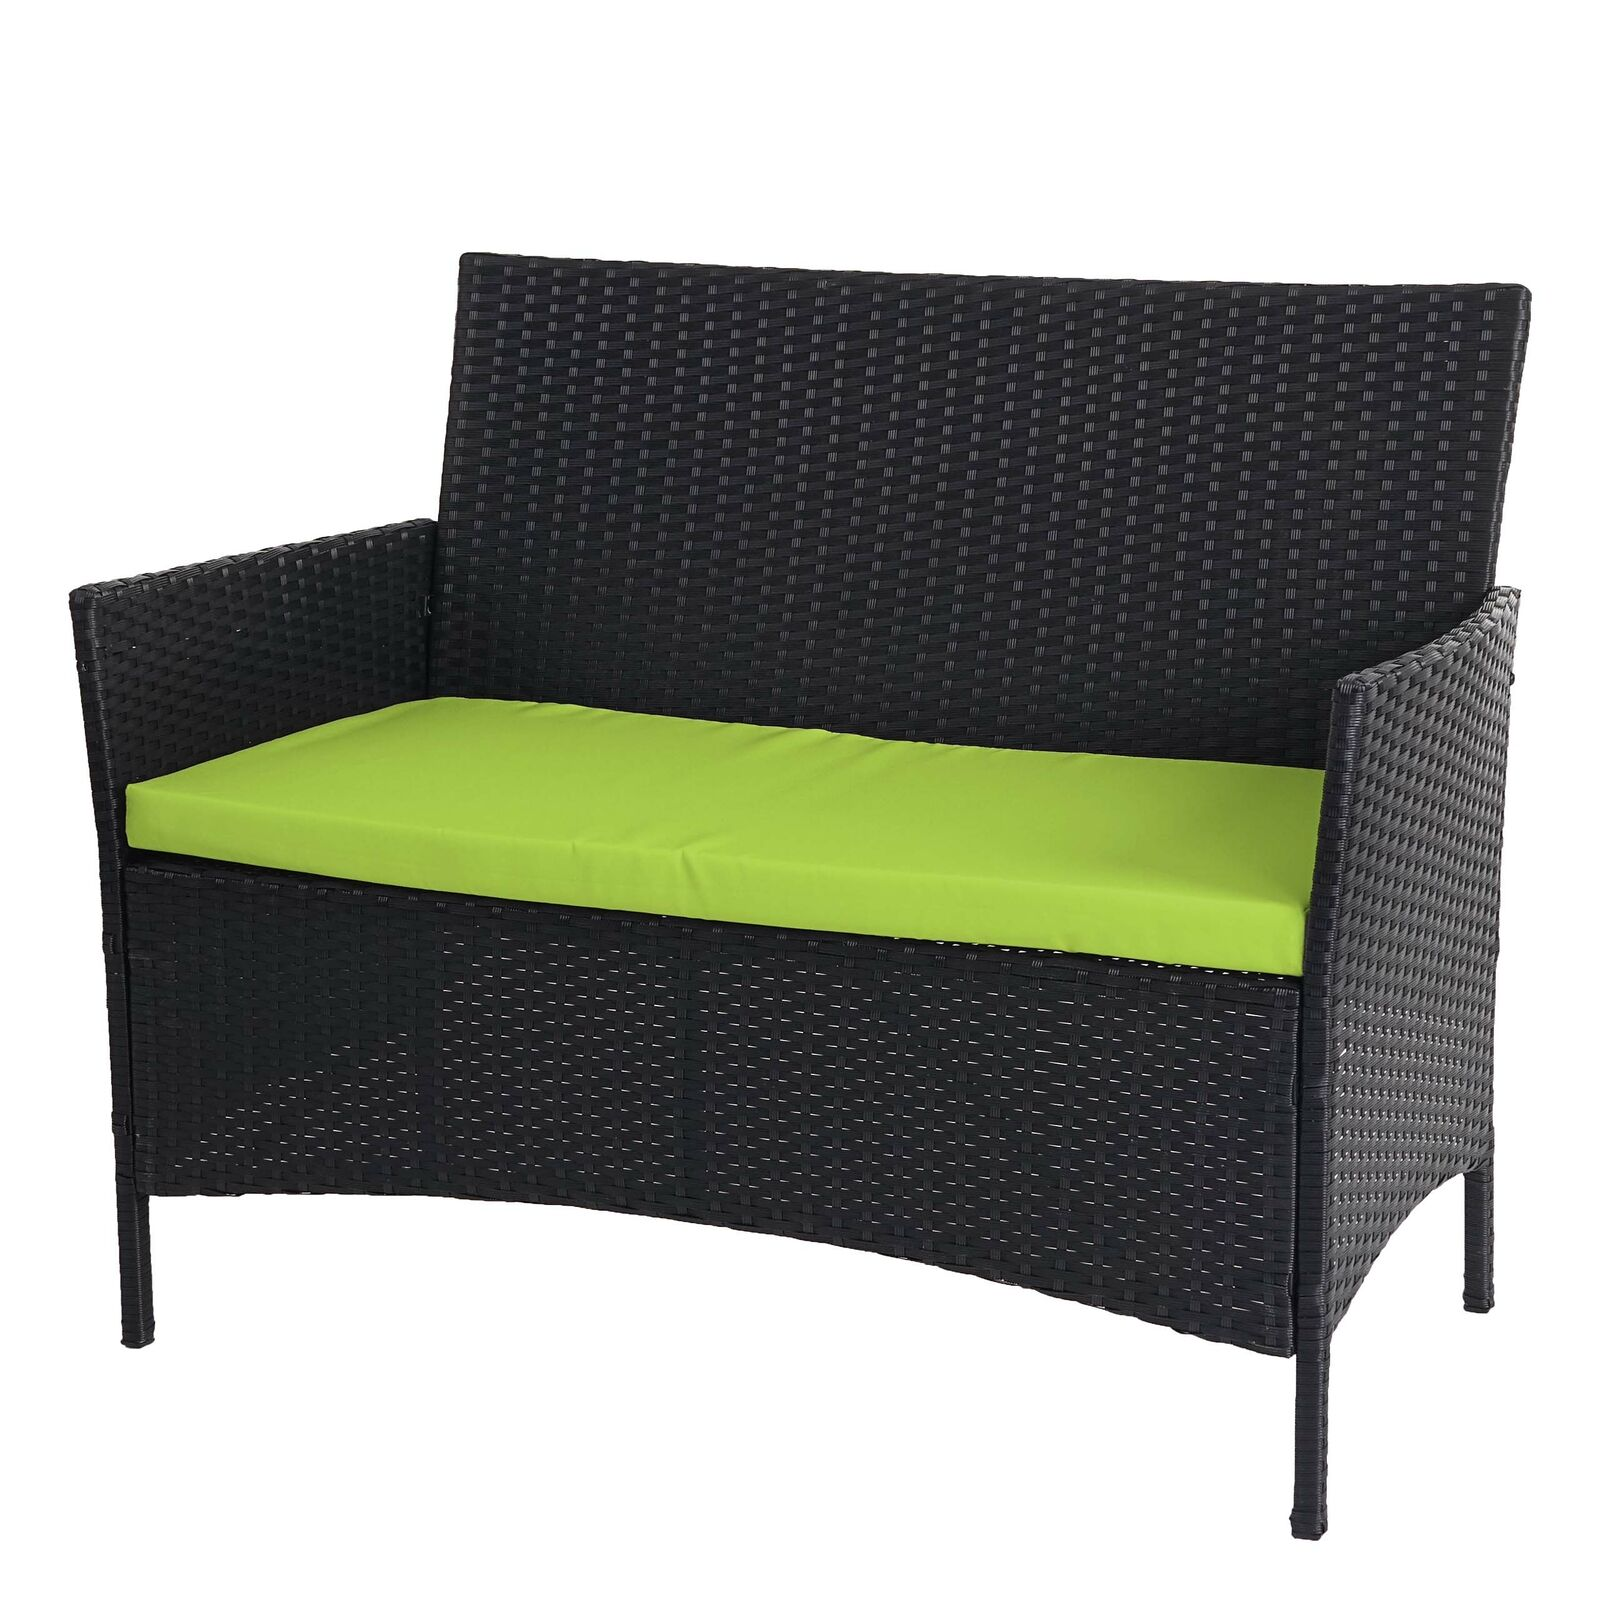 poly rattan gartenbank hamar sitzbank bank anthrazit. Black Bedroom Furniture Sets. Home Design Ideas